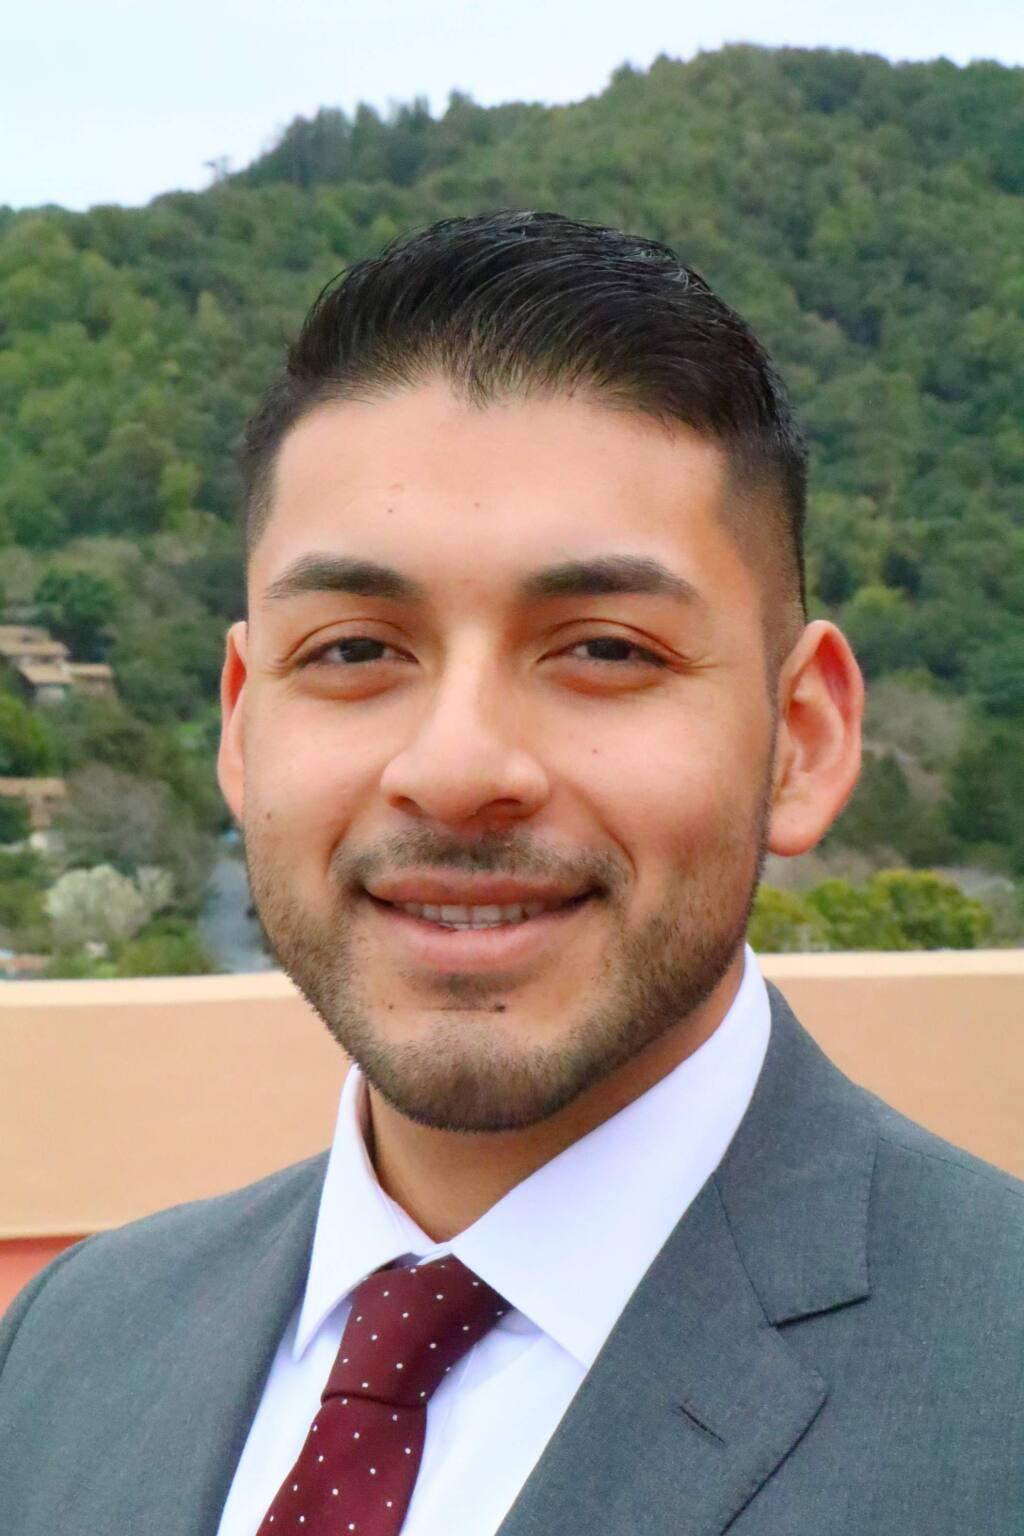 Lorenzo Cordova, 27, senior aide, Marin County Board of Supervisors, is a 2020 Forty Under 40 winner. (courtesy photo)